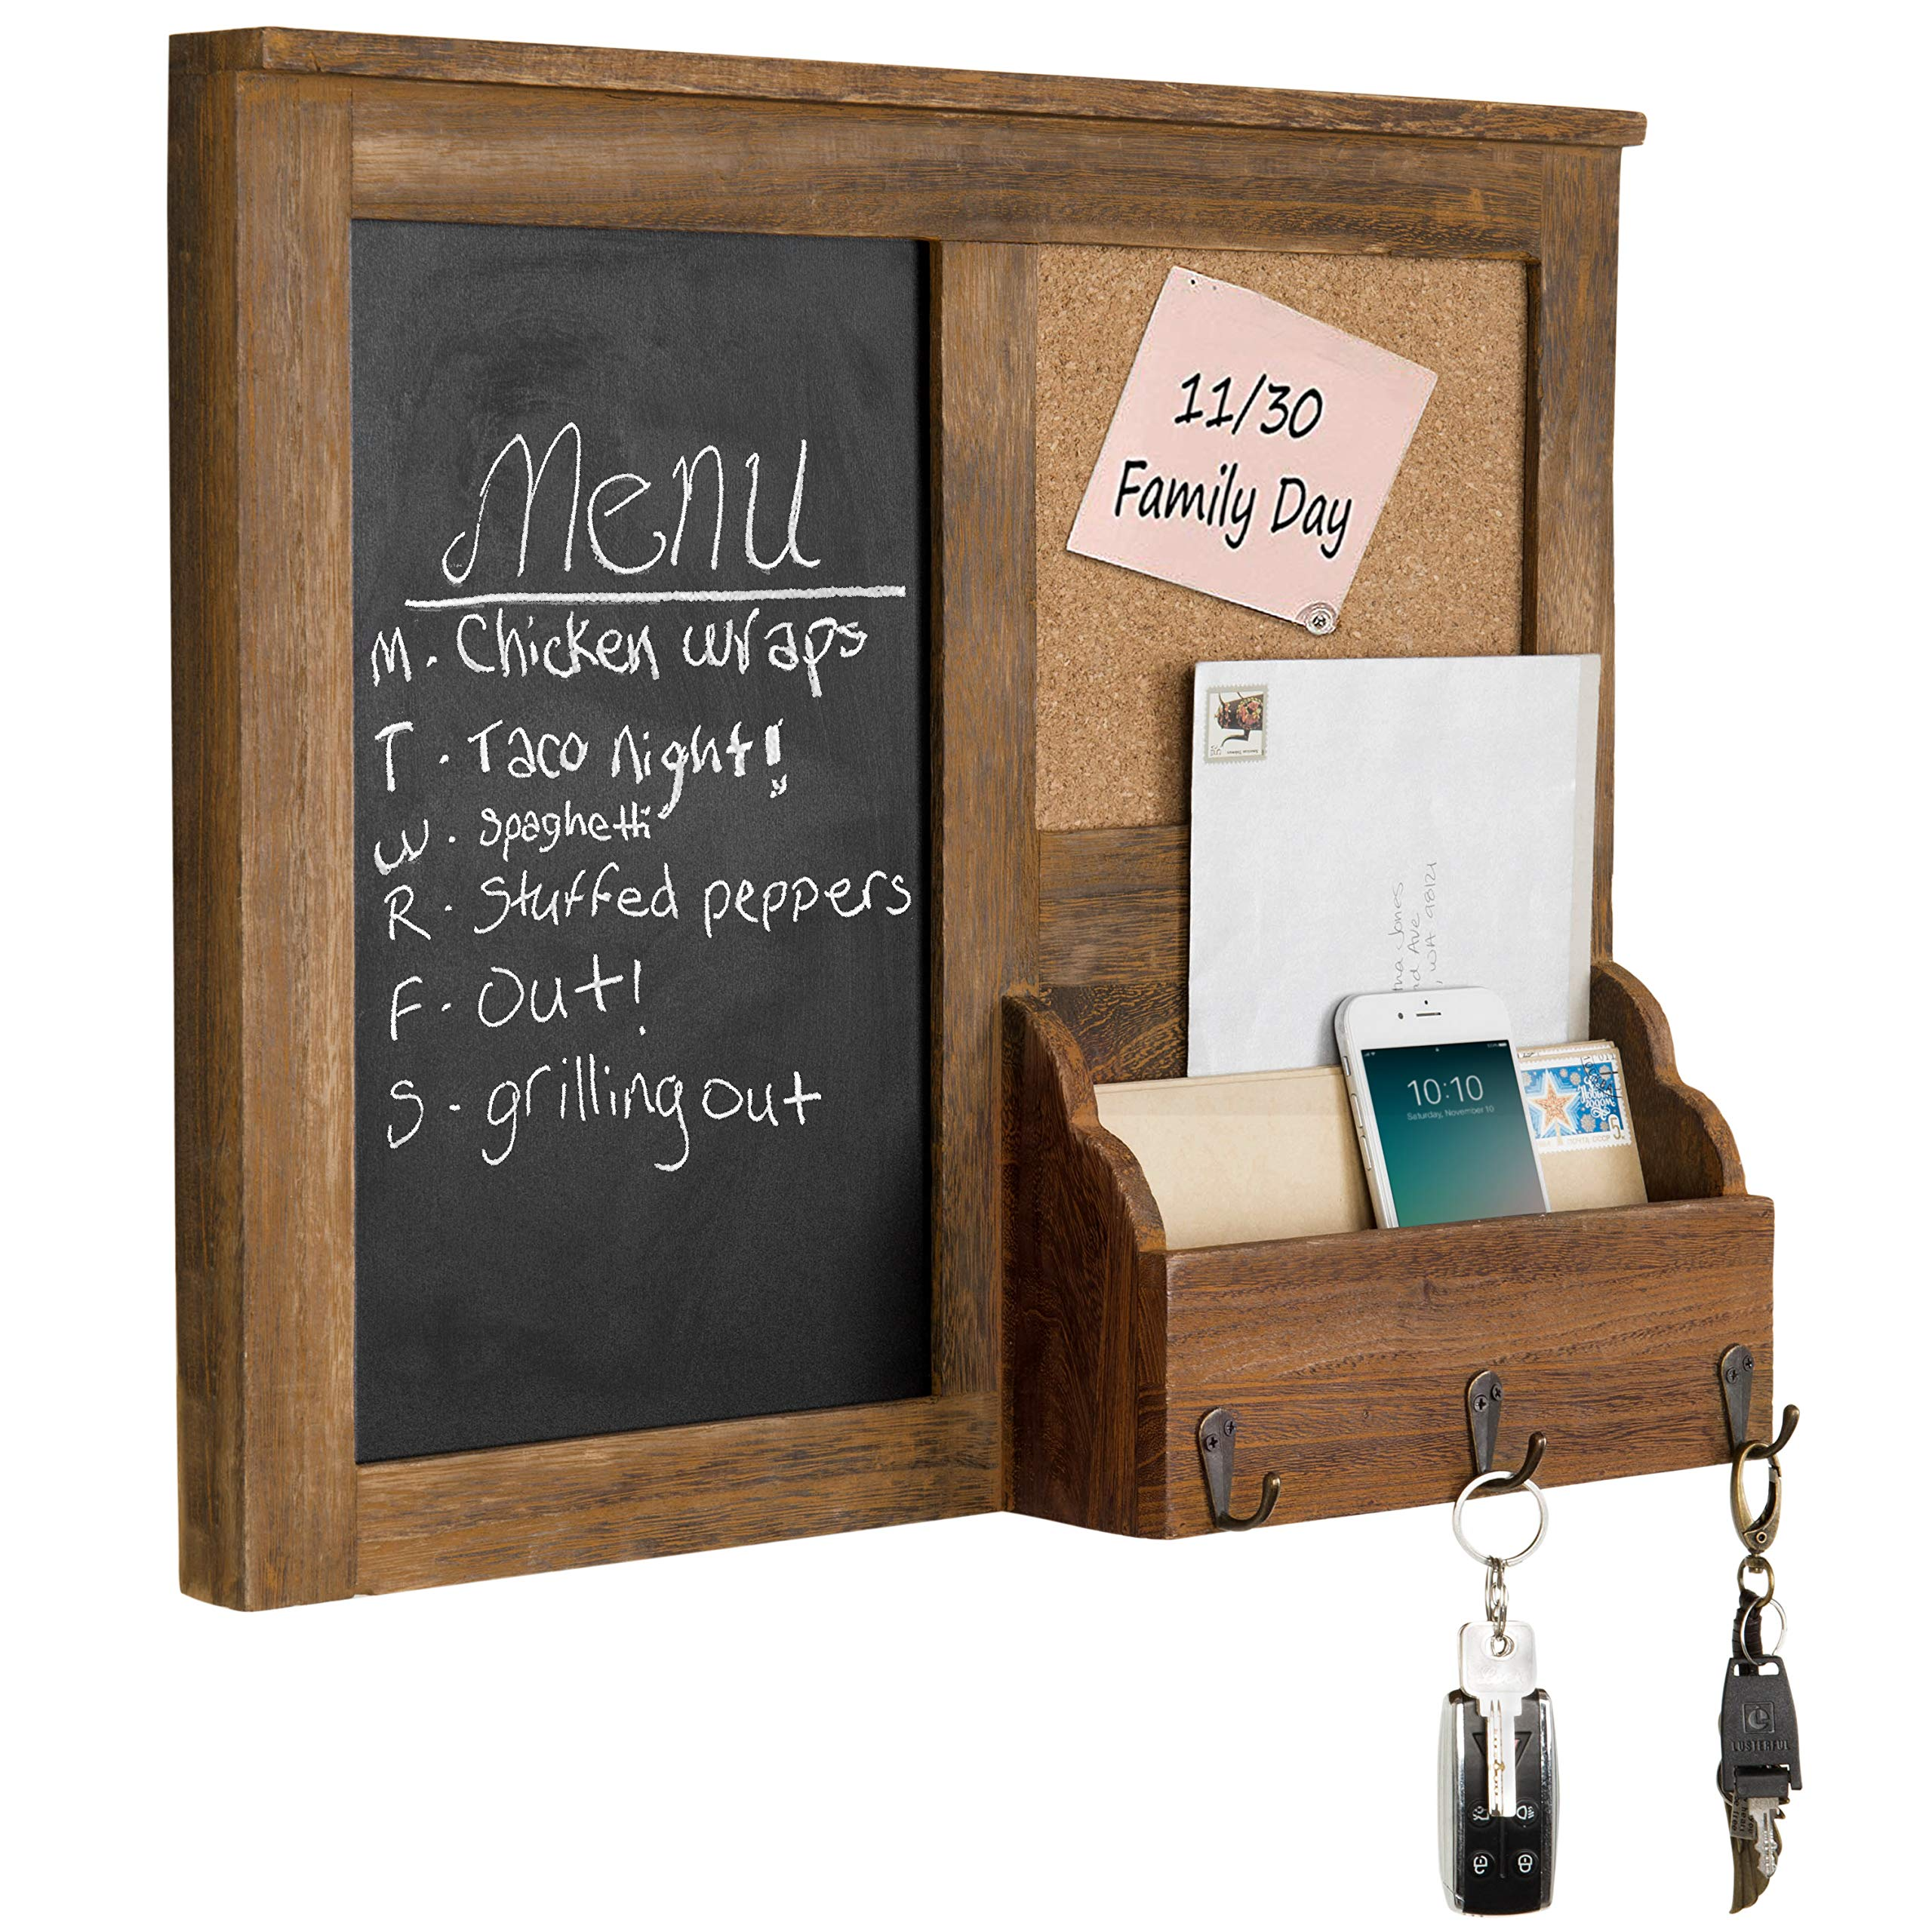 MyGift Wall-Mounted Vintage Brown Wood Chalkboard with Cork Board & Mail Holder by MyGift